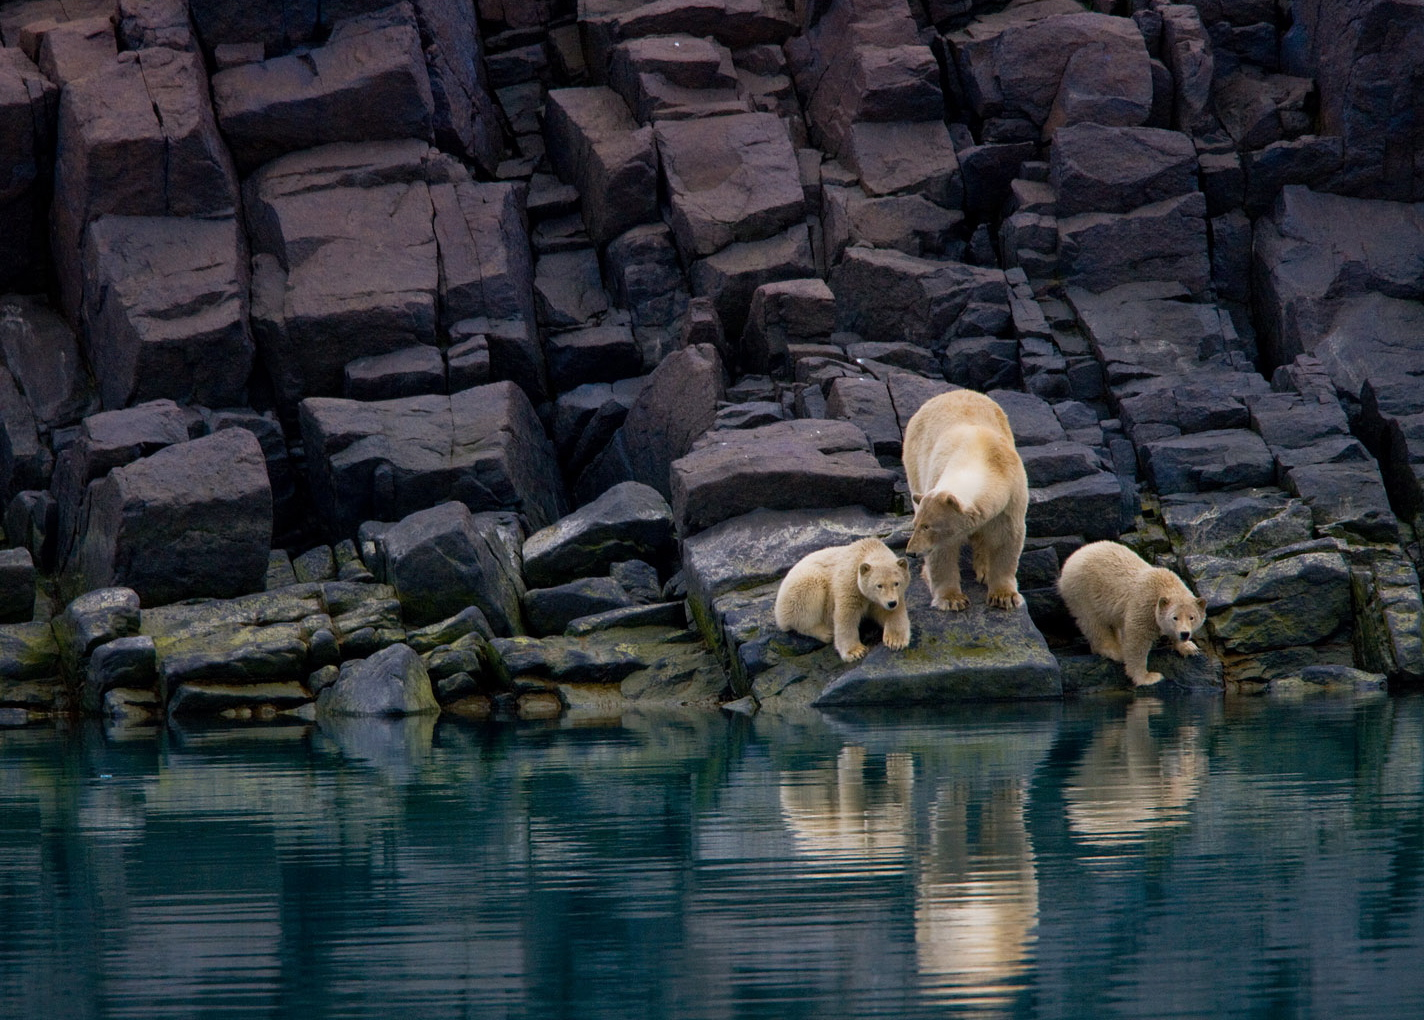 http://4.bp.blogspot.com/-H82kndAXFEI/TymwFPi4WwI/AAAAAAAAIg8/BoFzXBU5EE8/s1600/polar-bear-cubs-svalbard-norway-national-geographic-wallpaper.jpg